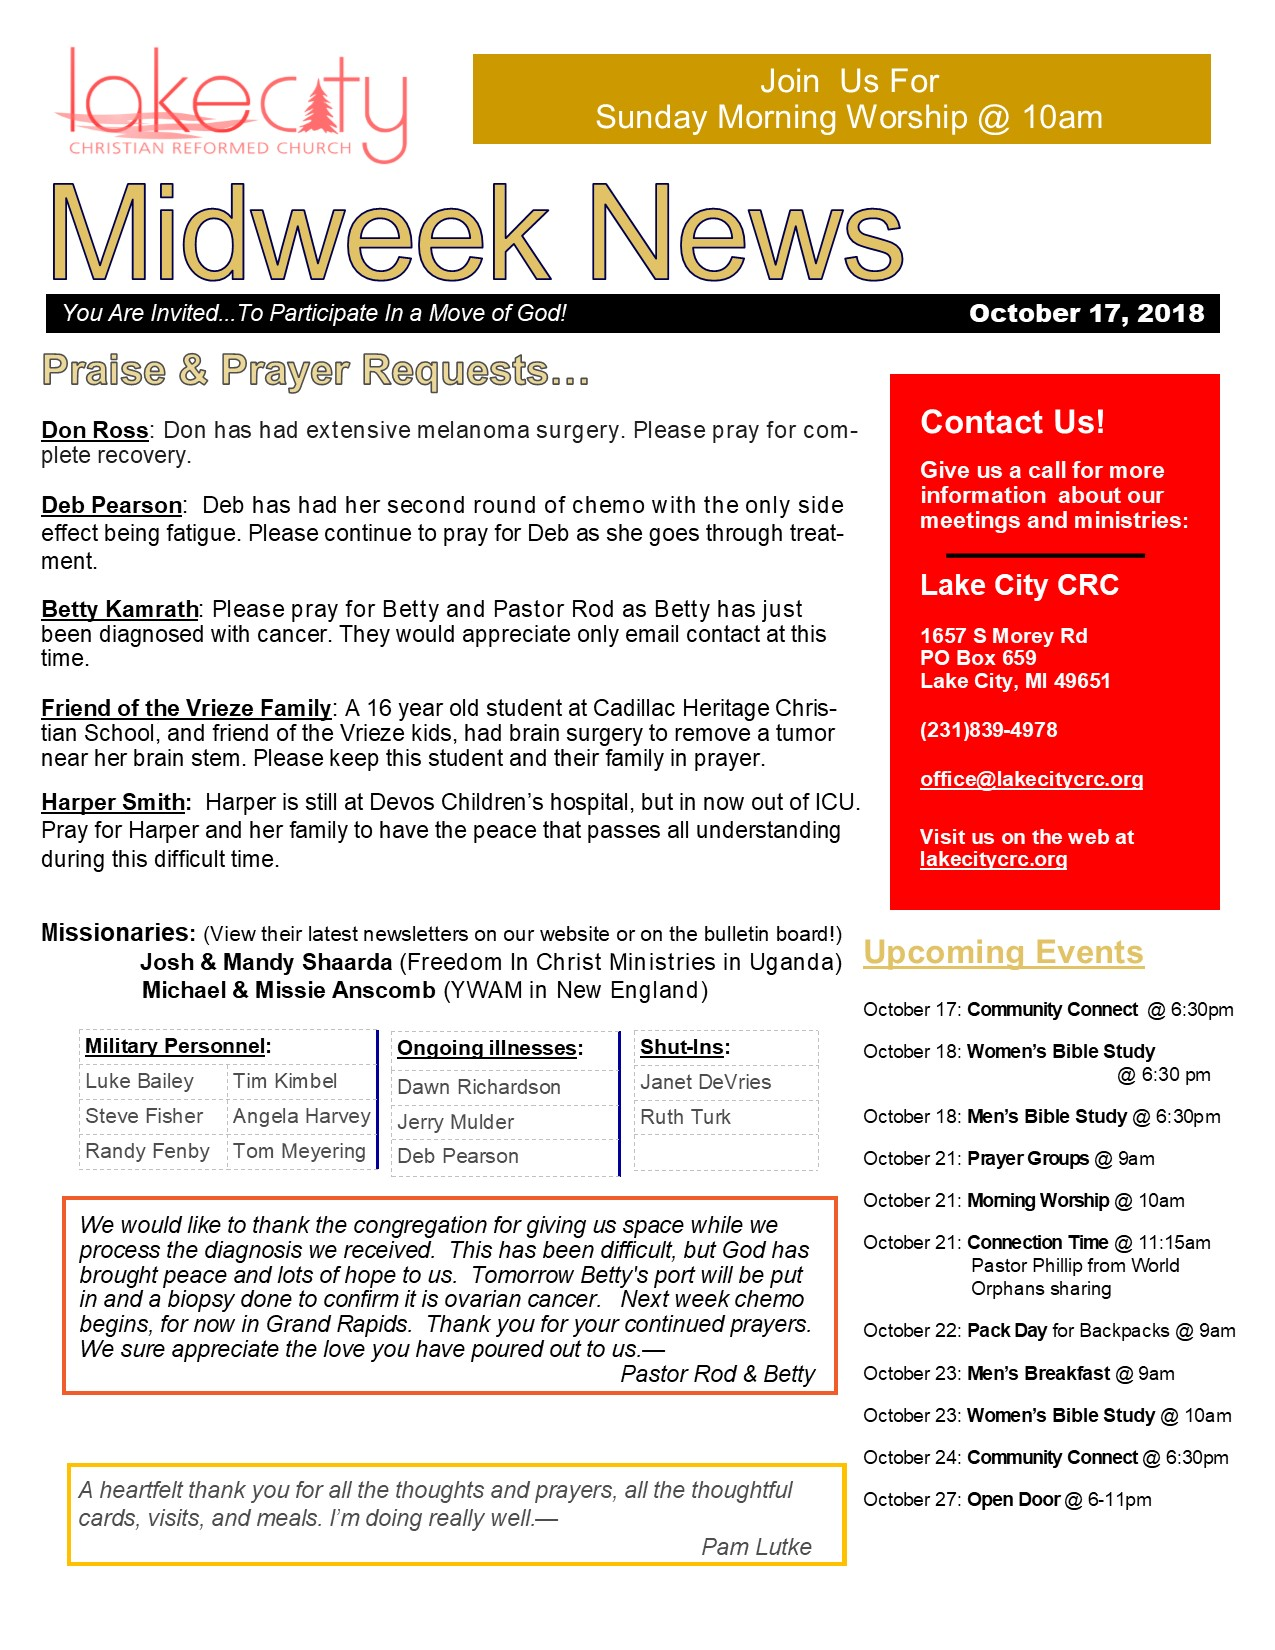 October 17, 2018 MidWeek News